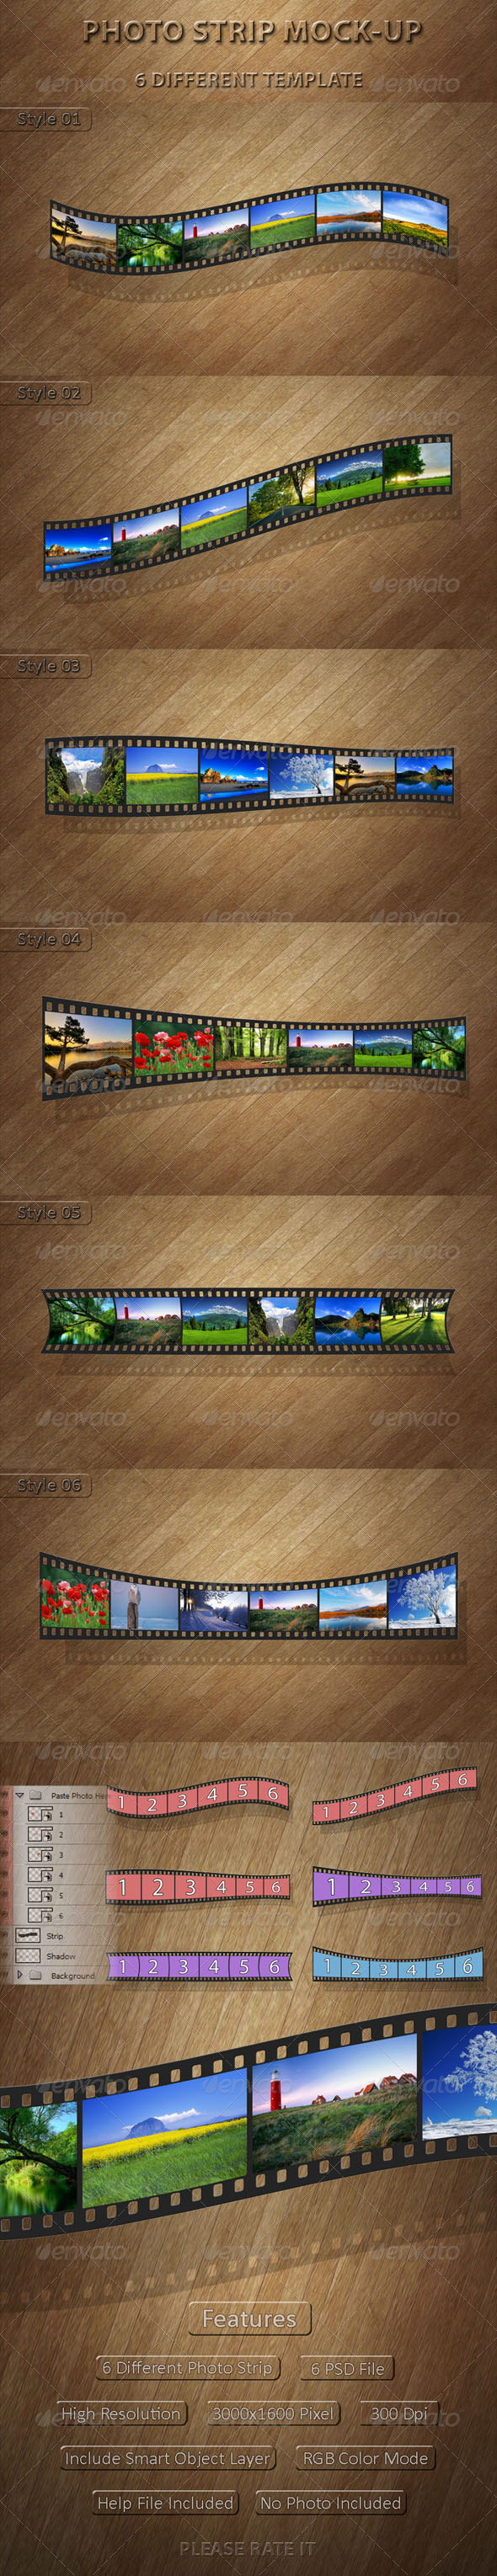 Photo Strip Mock-Up